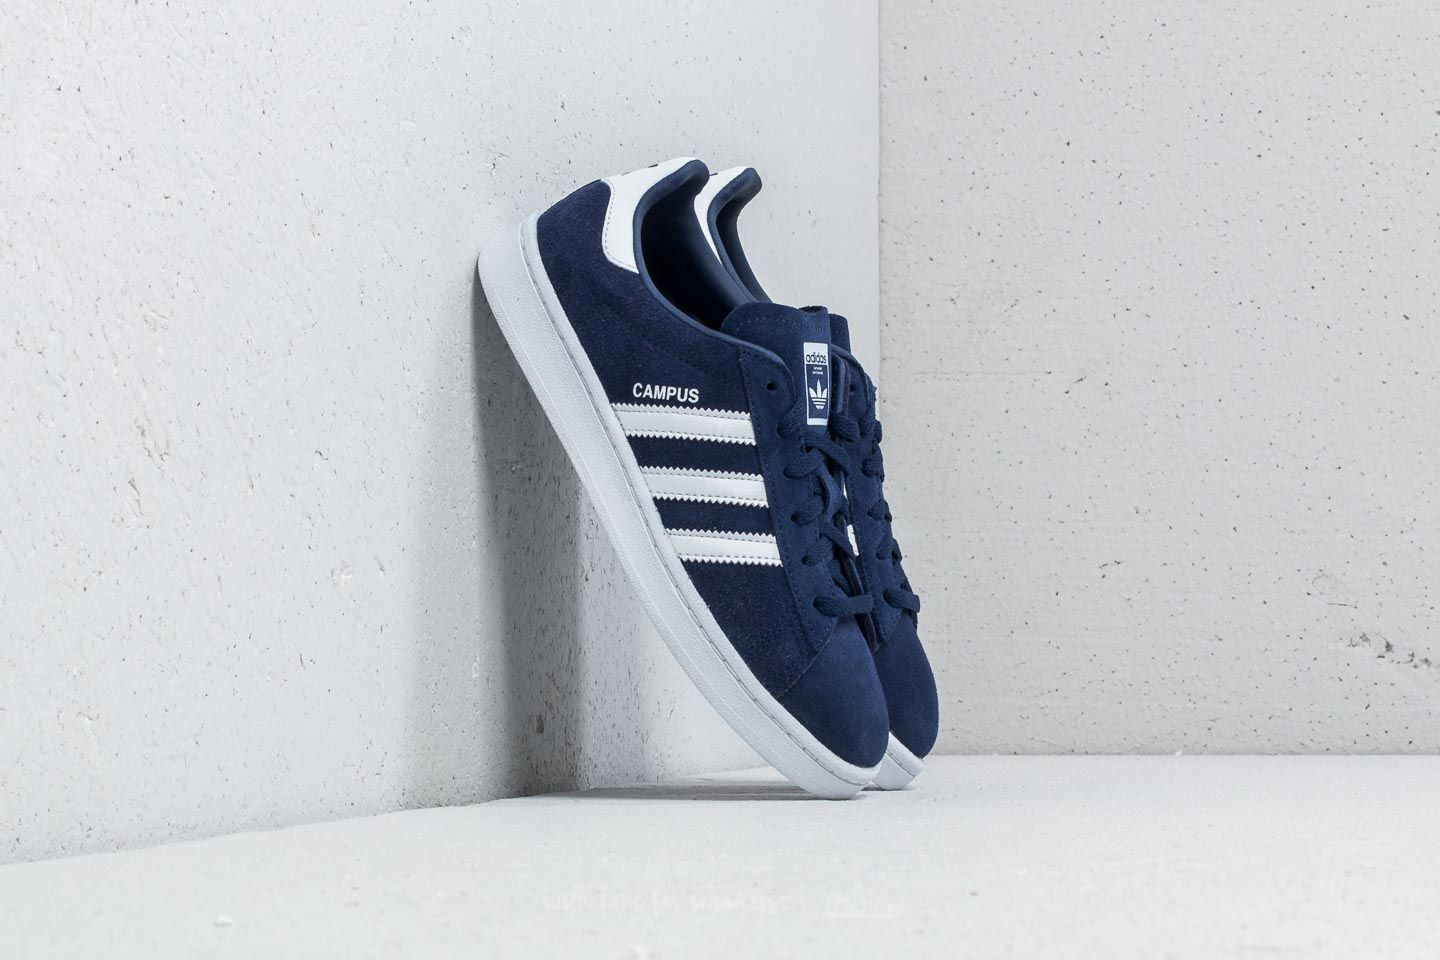 wholesale dealer b2526 51fbb adidas Campus C Dark Blue  Ftw White  Ftw White at a great price 36